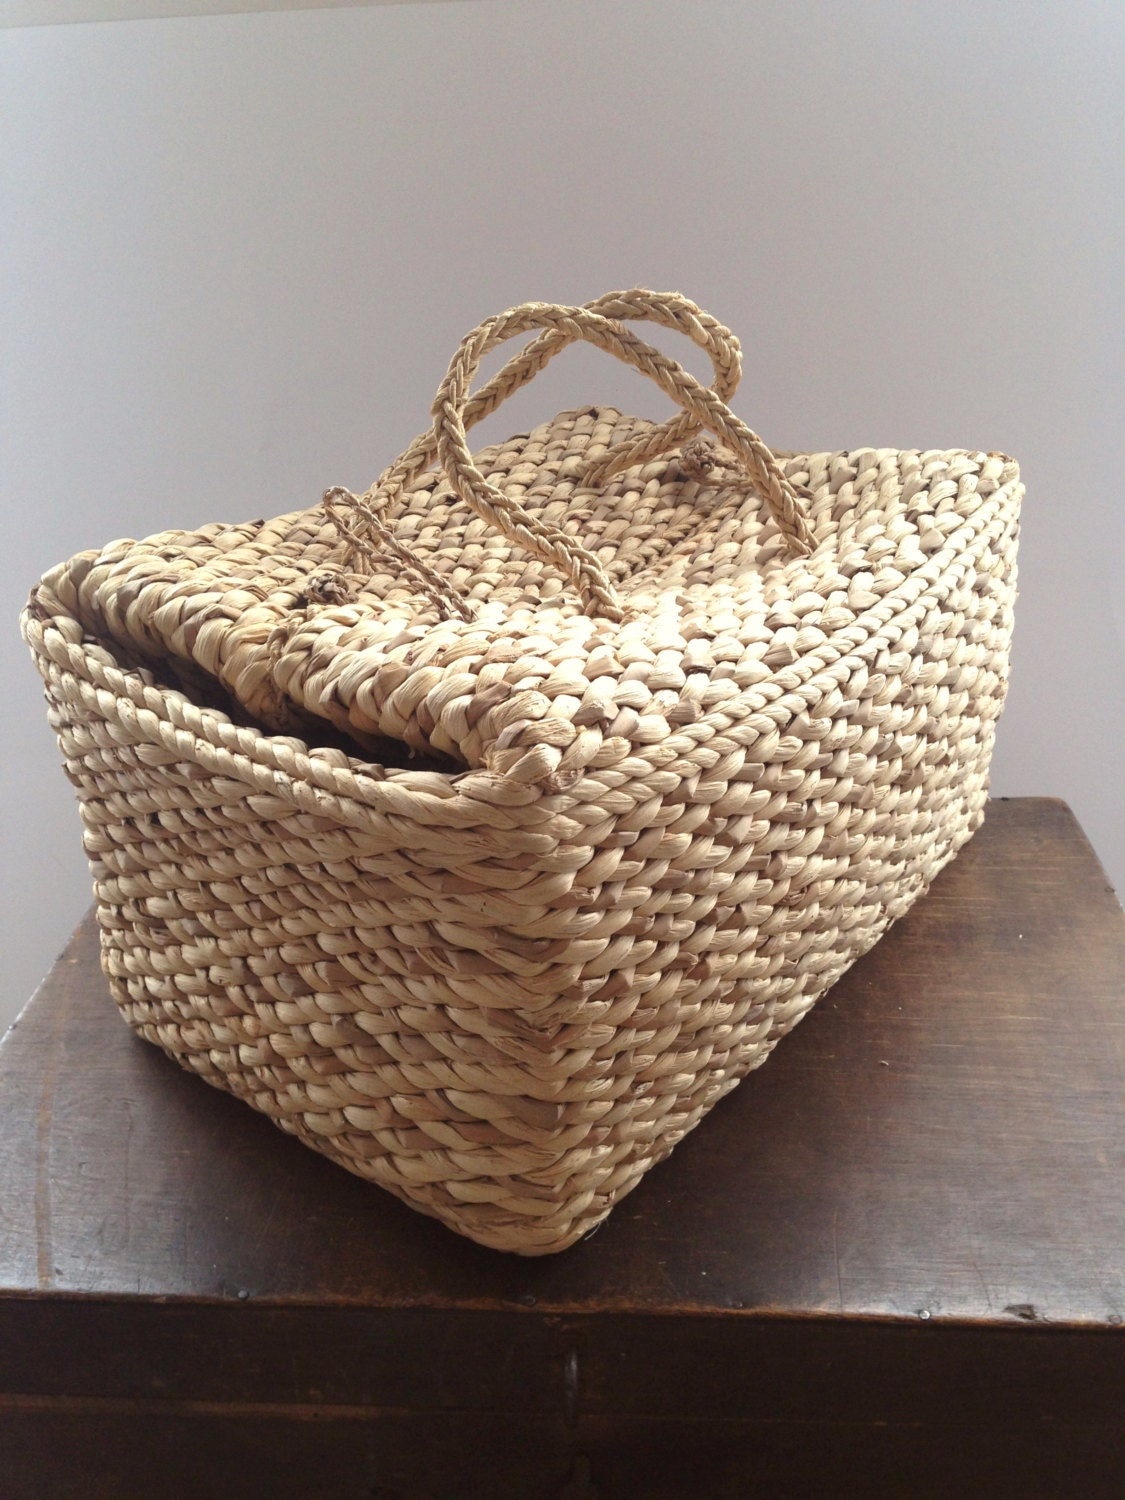 How to weave a basket out of hay : Vintage large straw bag woven picnic summer wicker